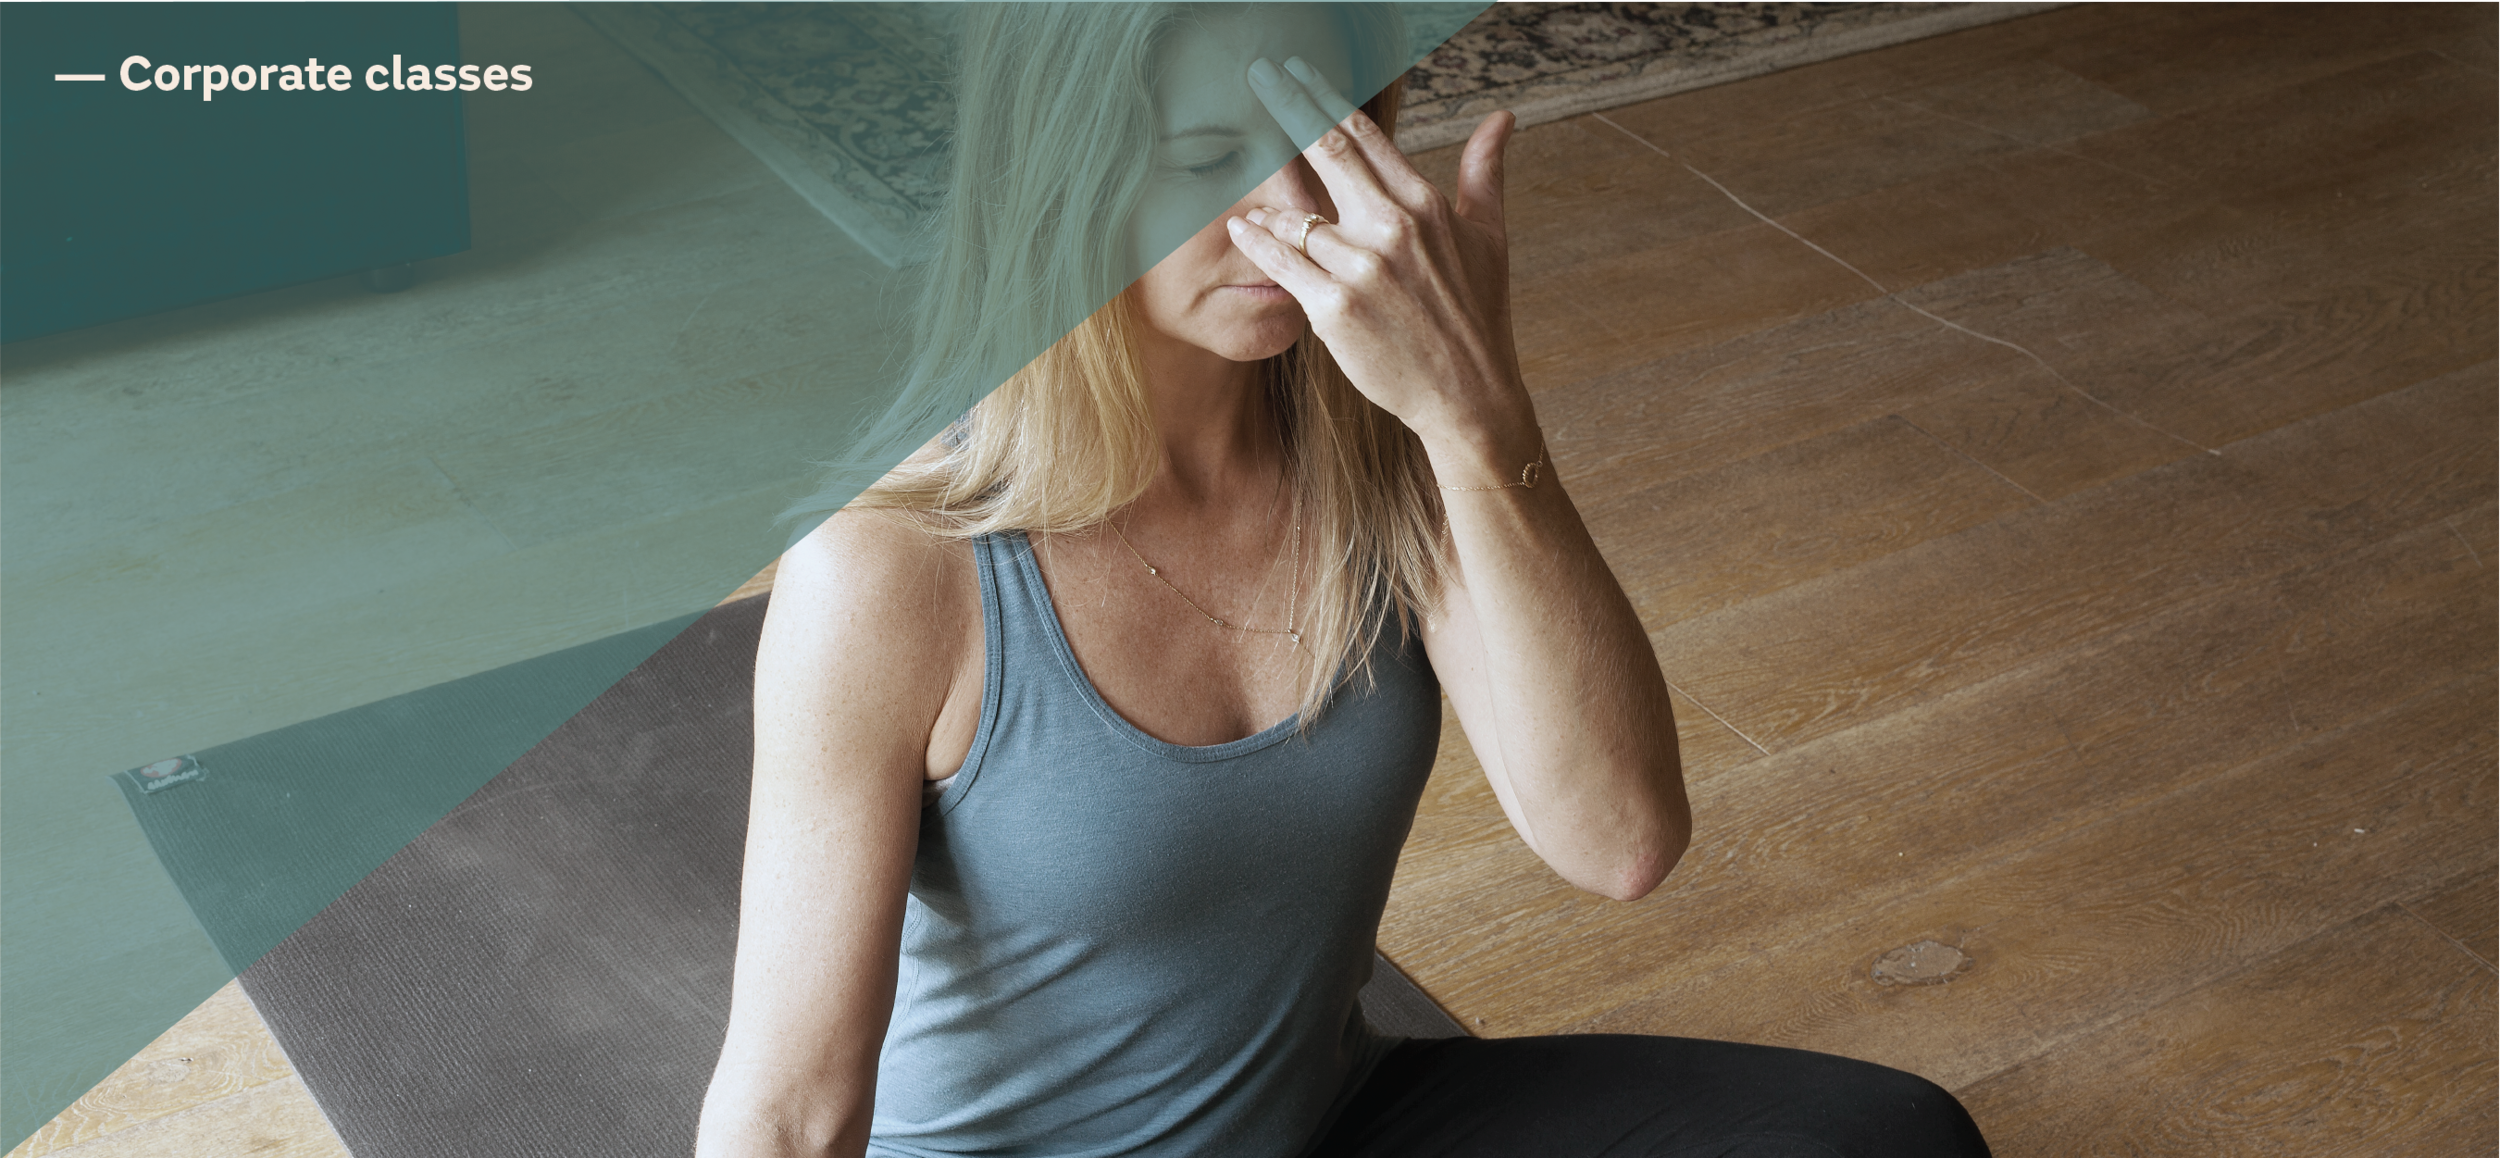 sylviayoga corporate meditation classes Dublin